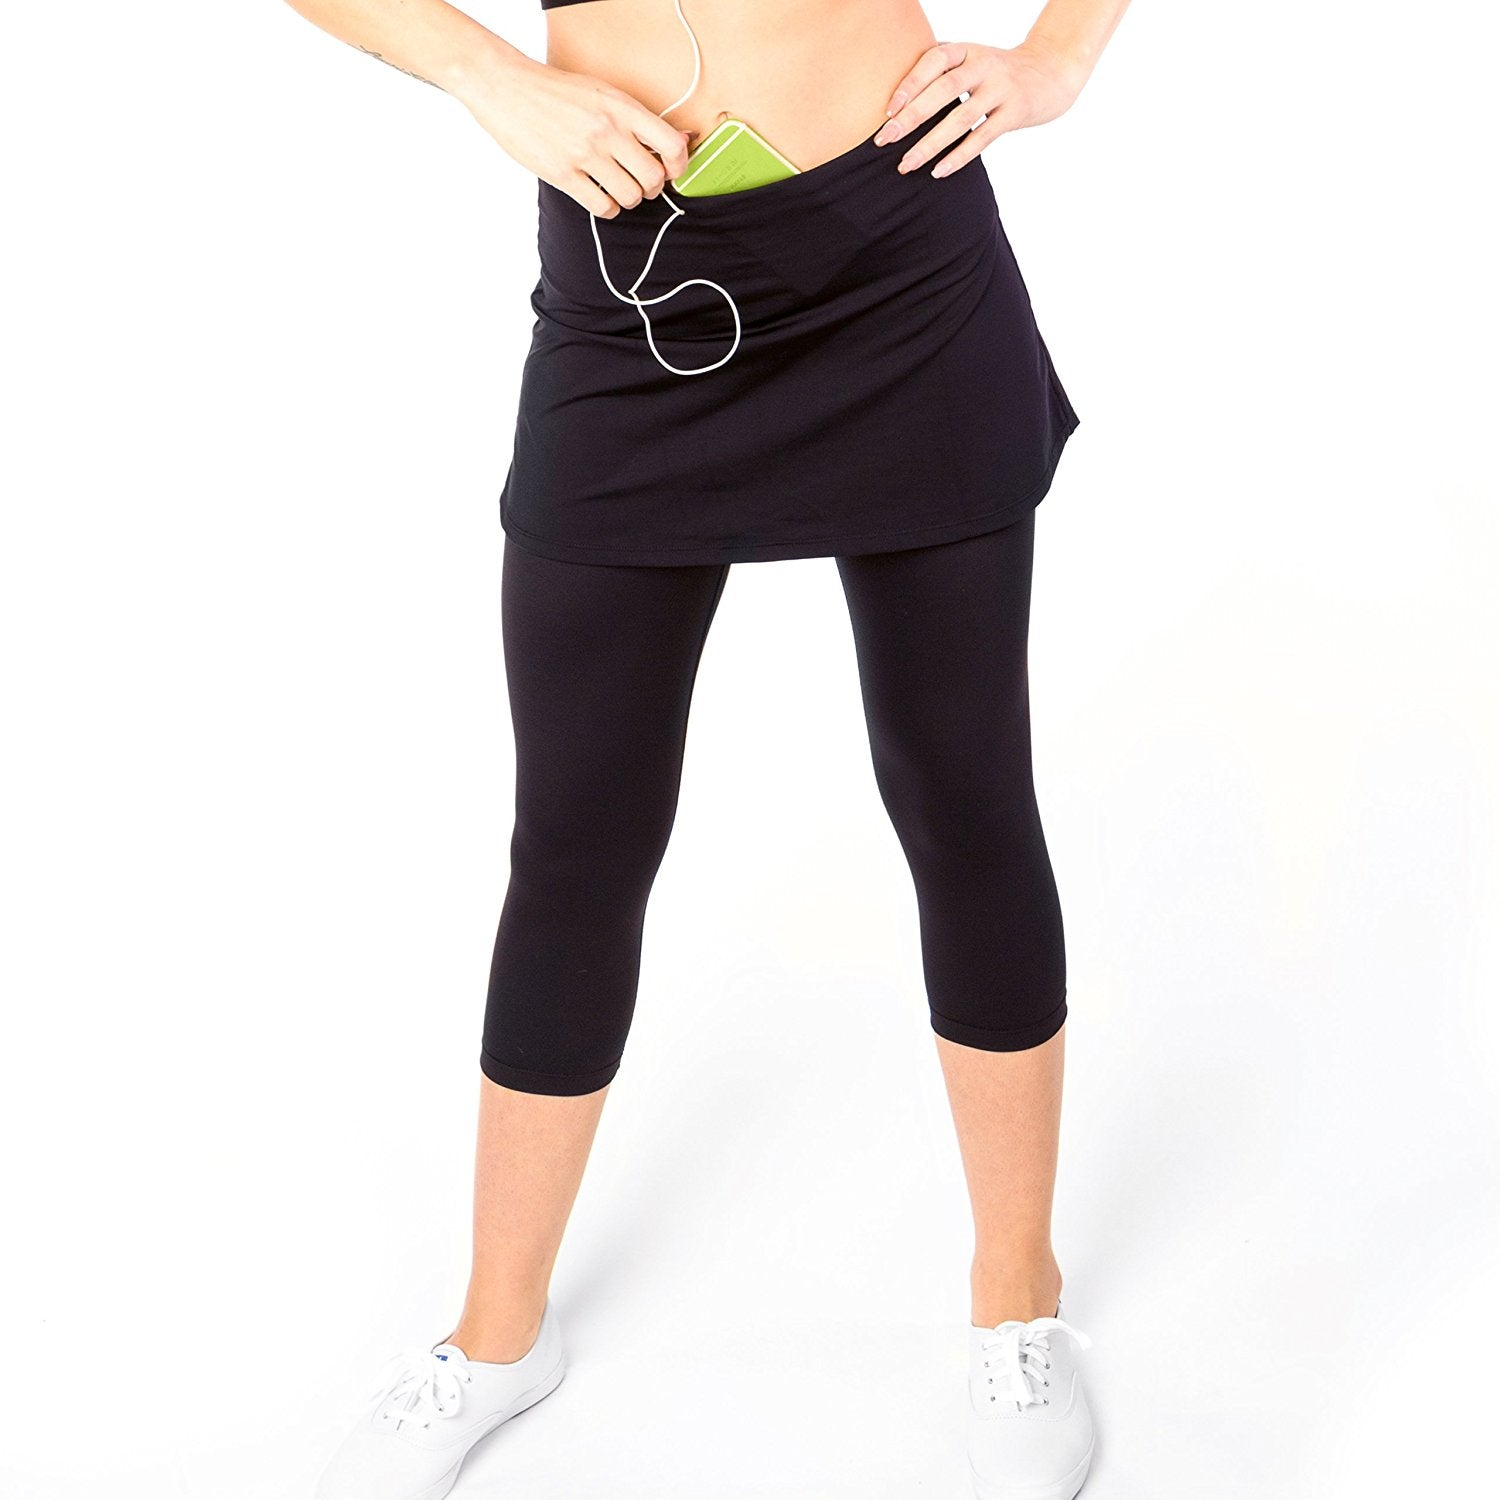 3c53d12b123cc5 Go Sport-it: SKIRTED CAPRI Leggings with Pockets and Tummy Control ...